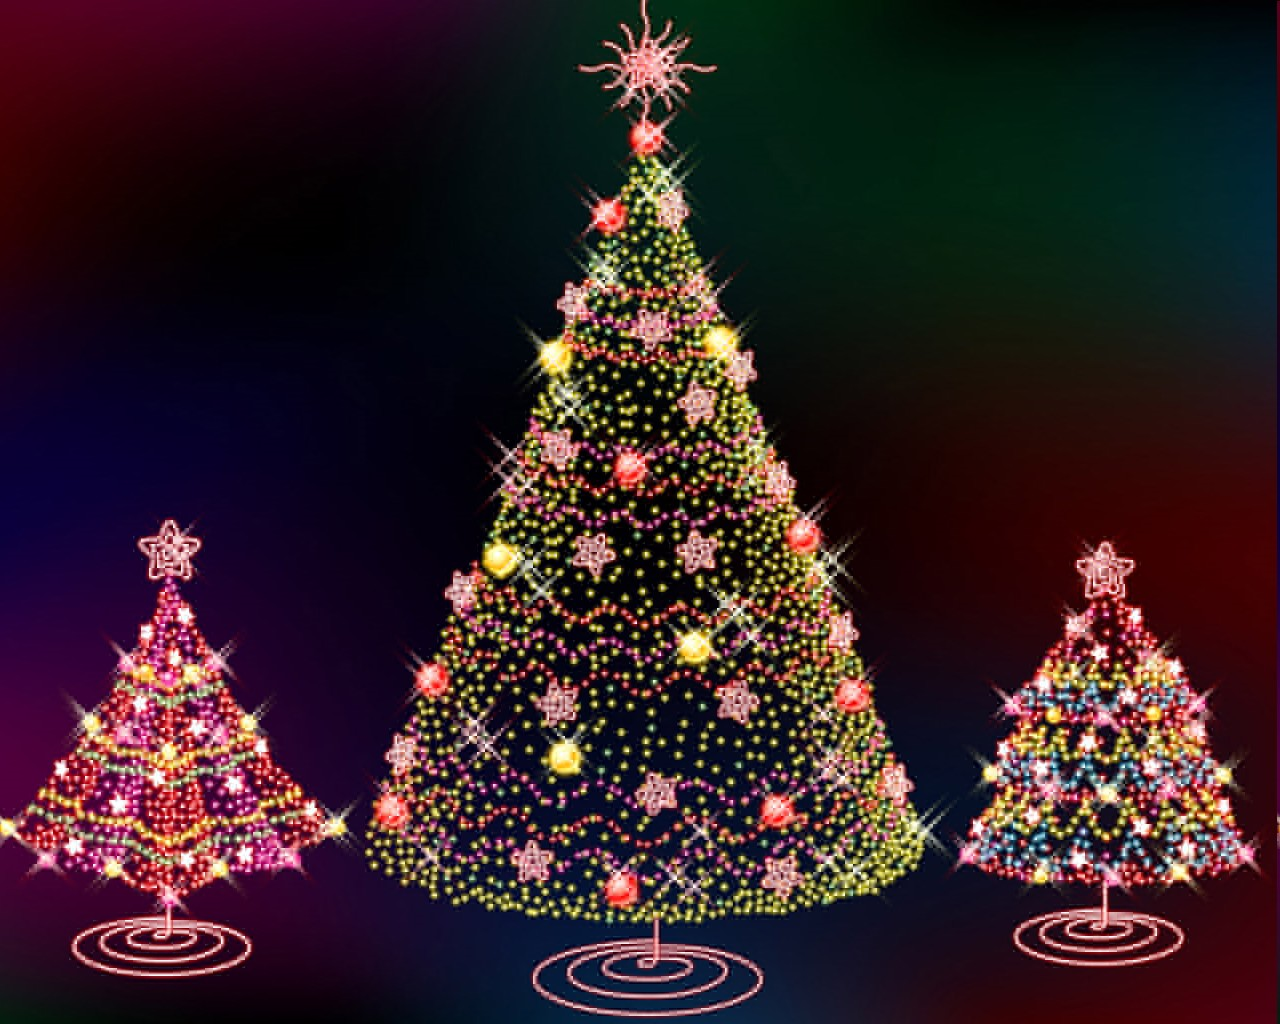 Posted by christmas stuff at 11:42 PM | Labels: Christmas tree ...